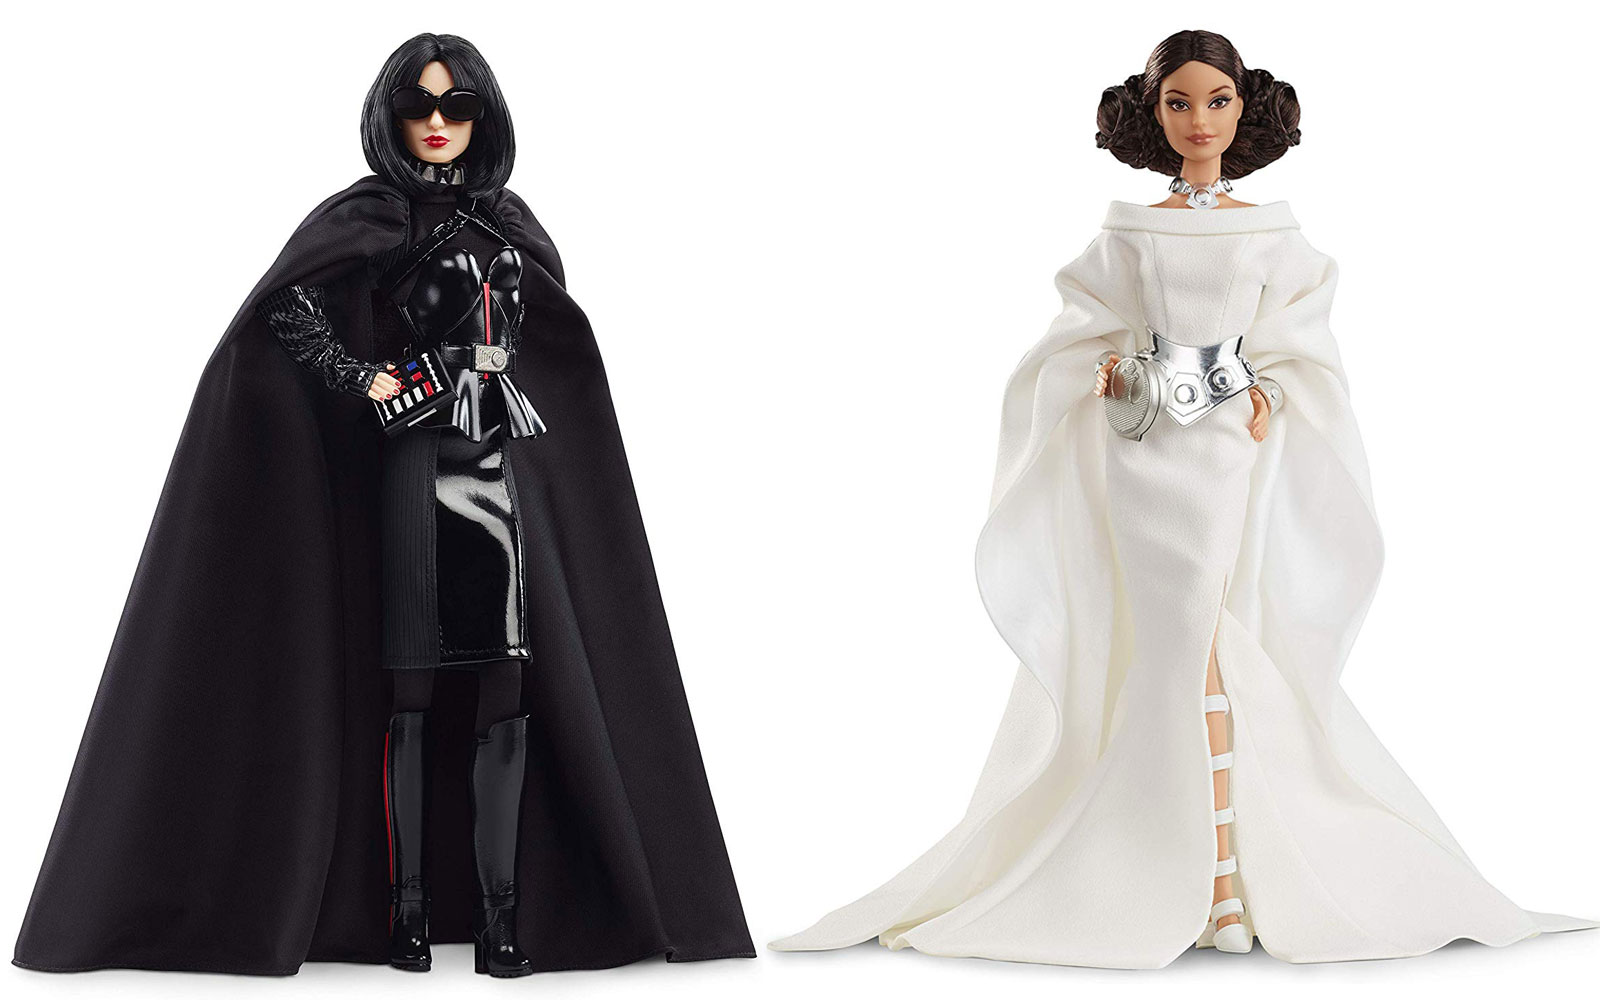 Disney and Mattel Teamed Up to Make Star Wars Barbie Dolls — and You Can Preorder Them on Amazon